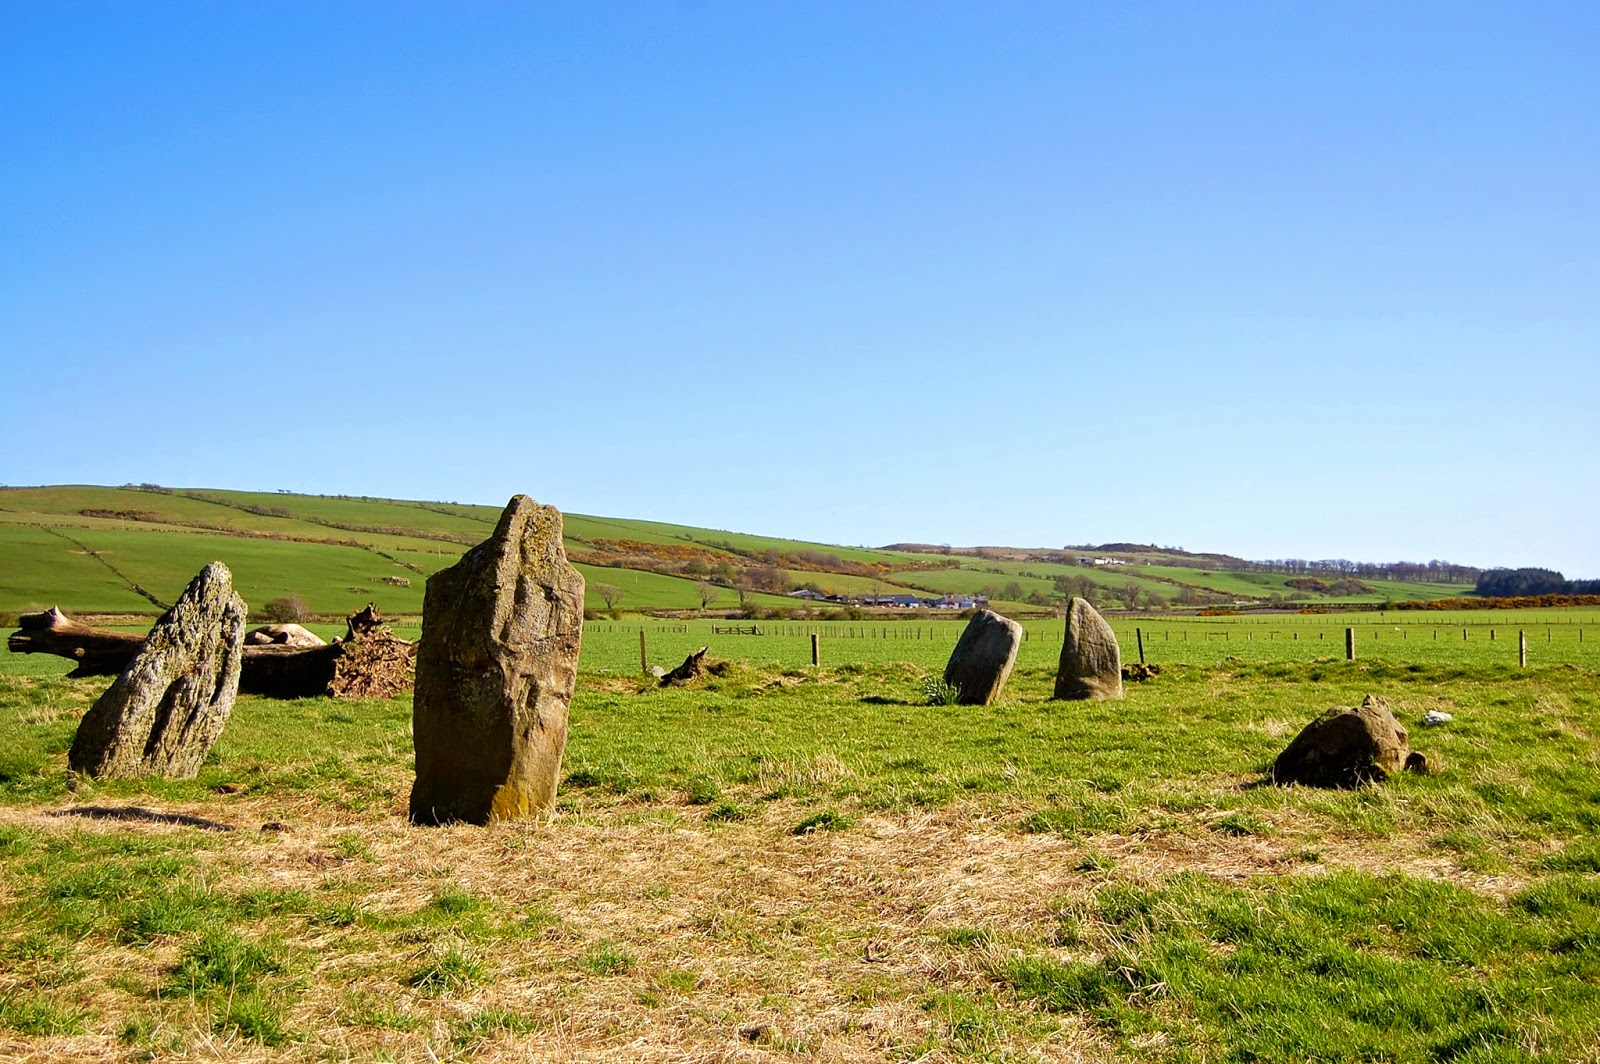 St. Colmac cottages stone circle viewed from the north